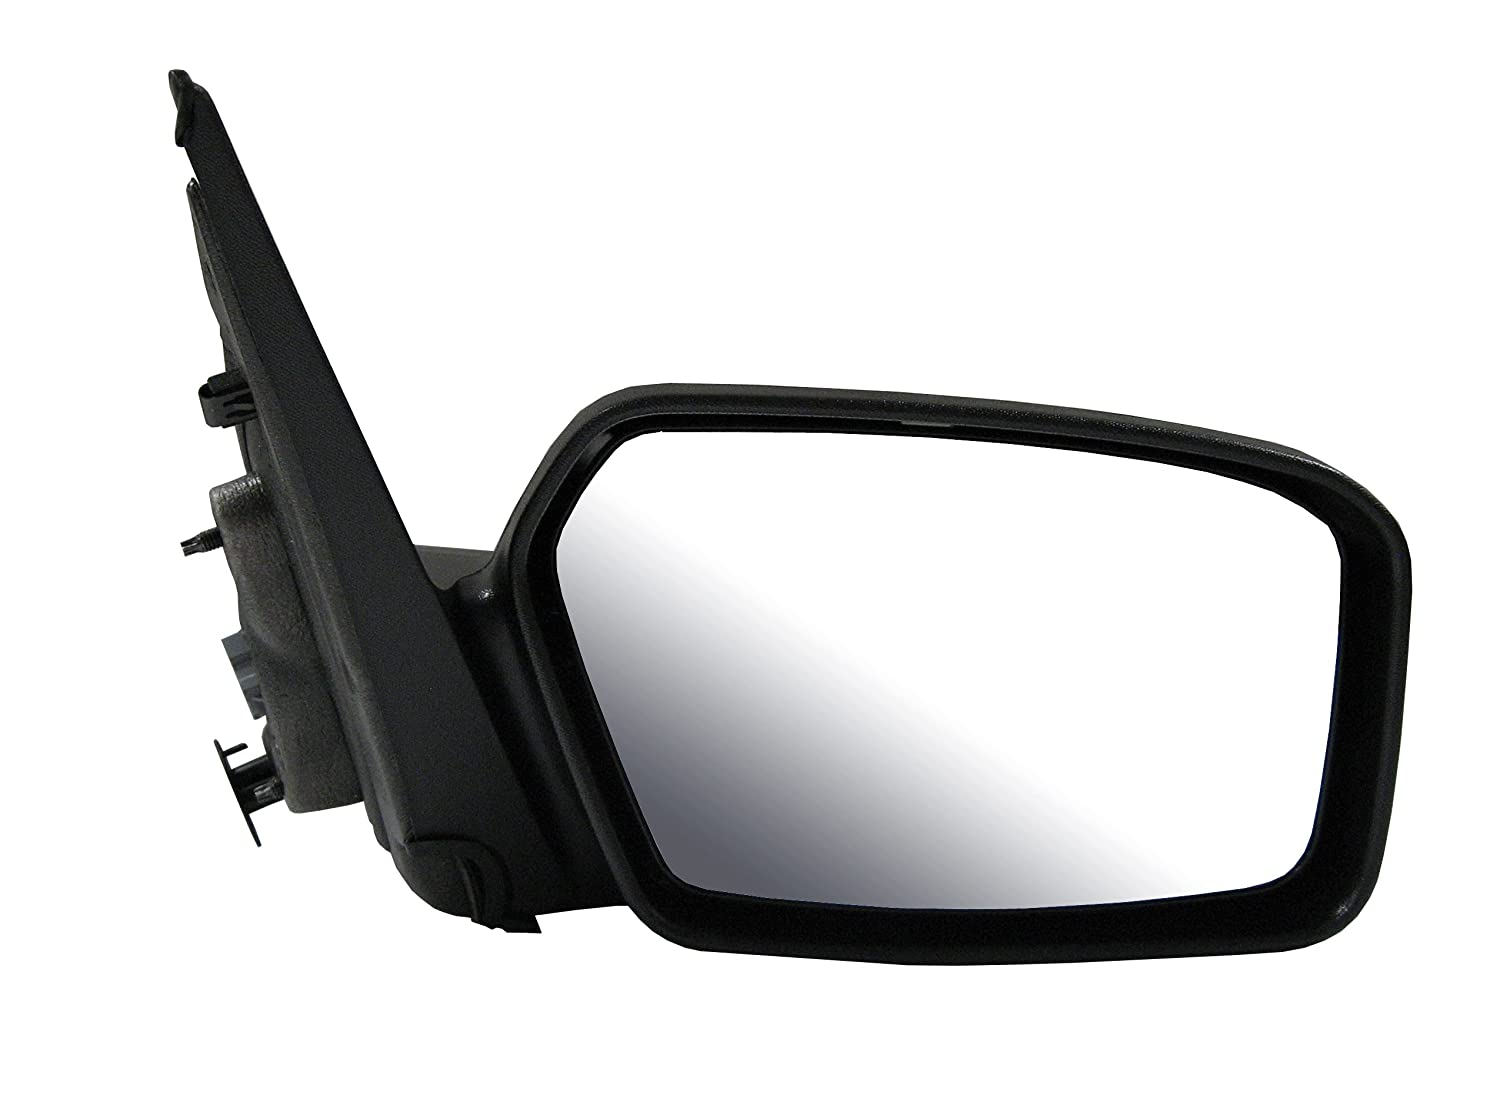 Passenger Side Non-Heated Power Mirror Fits Ford Fusion Mercury Milan FO1321265